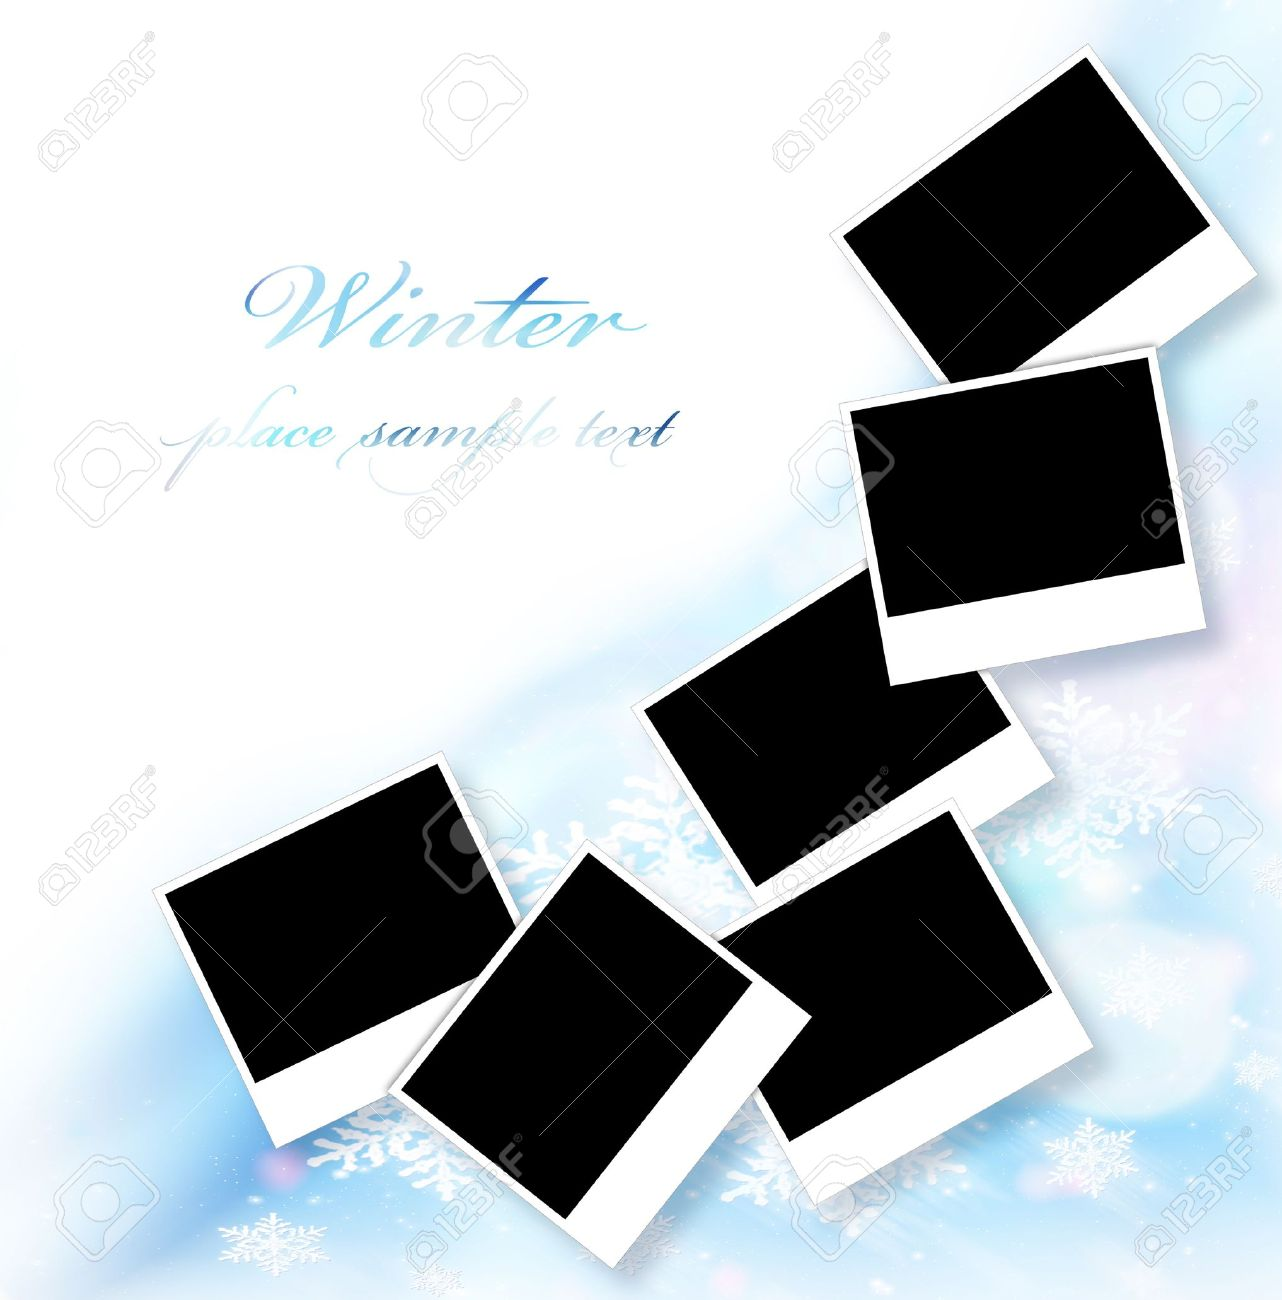 Blank Picture Frames Abstract Snowflake Decorative Border